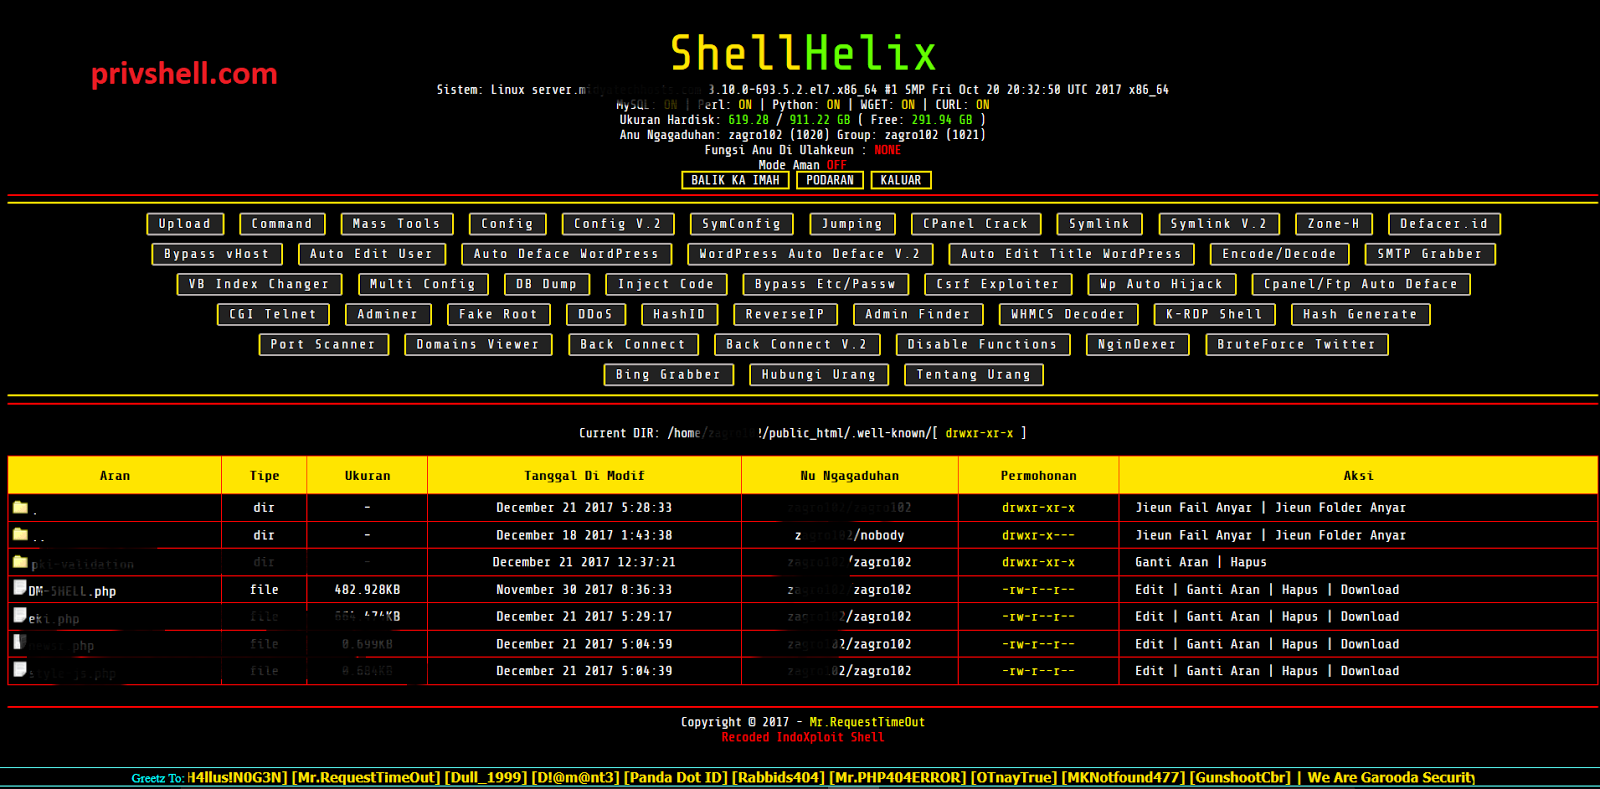 shell helix bypass shell ~ bypass shell, angel shell,Shell Download